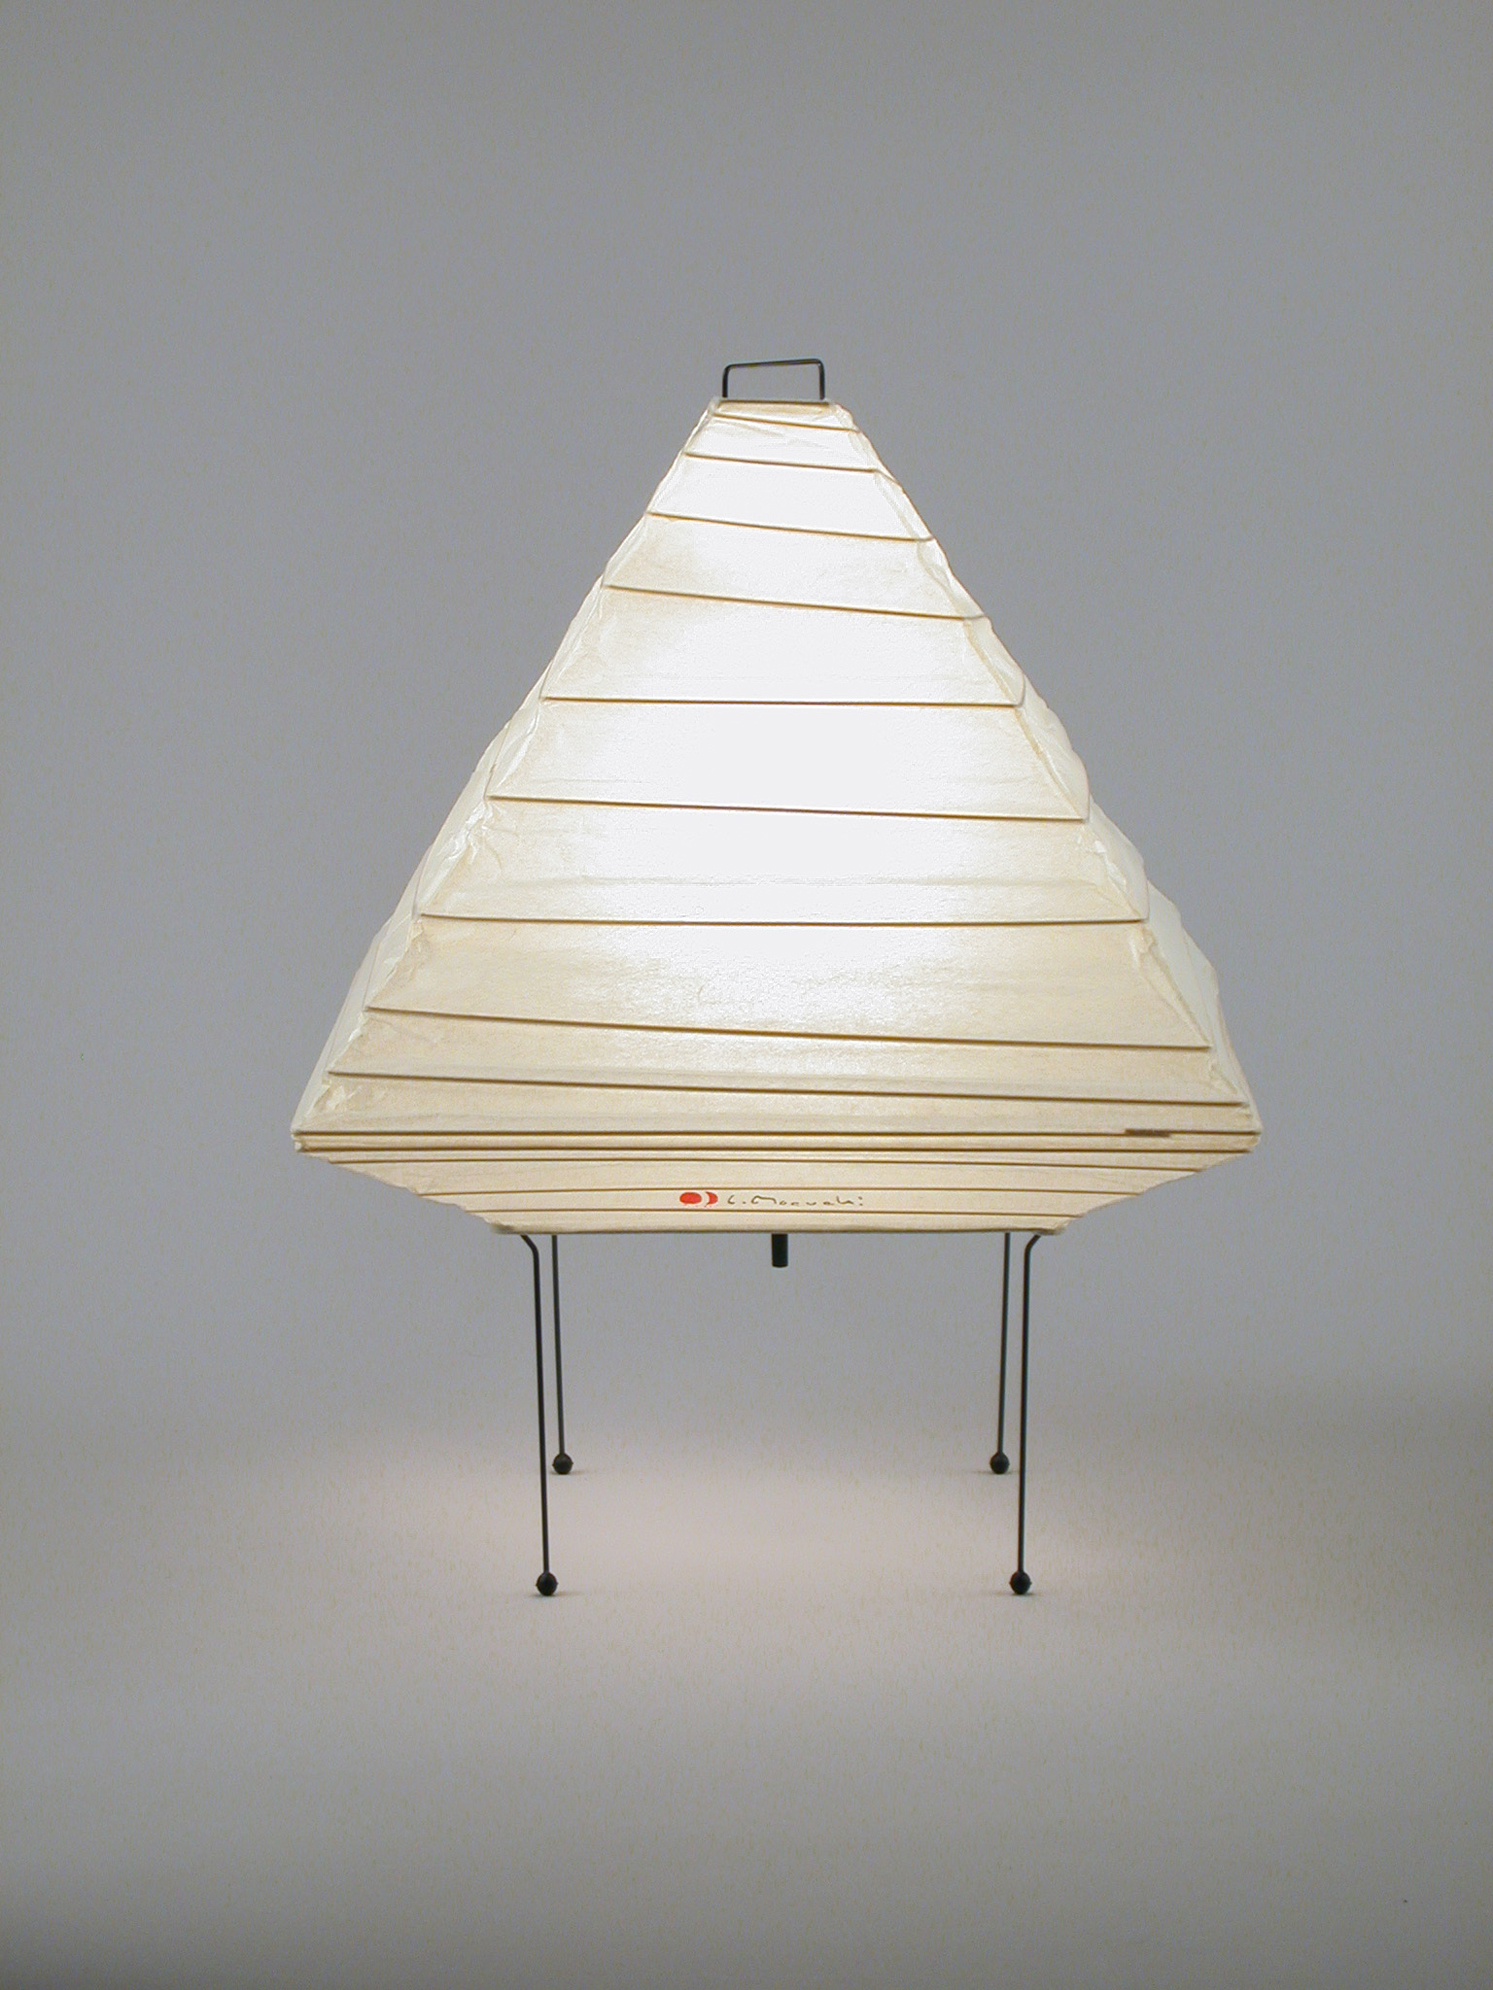 Table lamp by akari 5x pyramid table lamp download image geotapseo Images